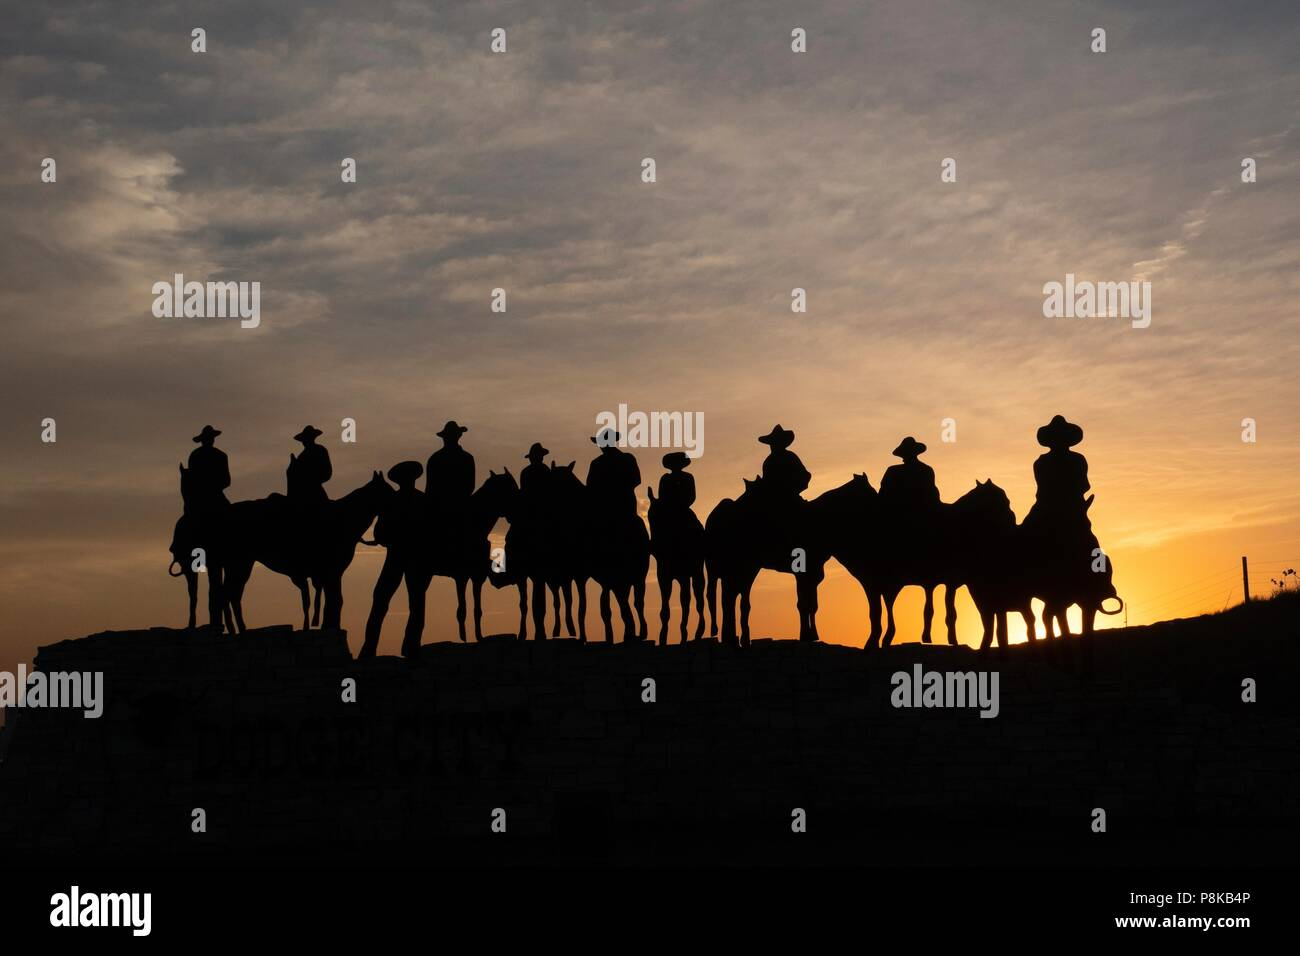 silhouette sculpture of cowboys on horseback  at sunset in Dodge city, Kansas - Stock Image